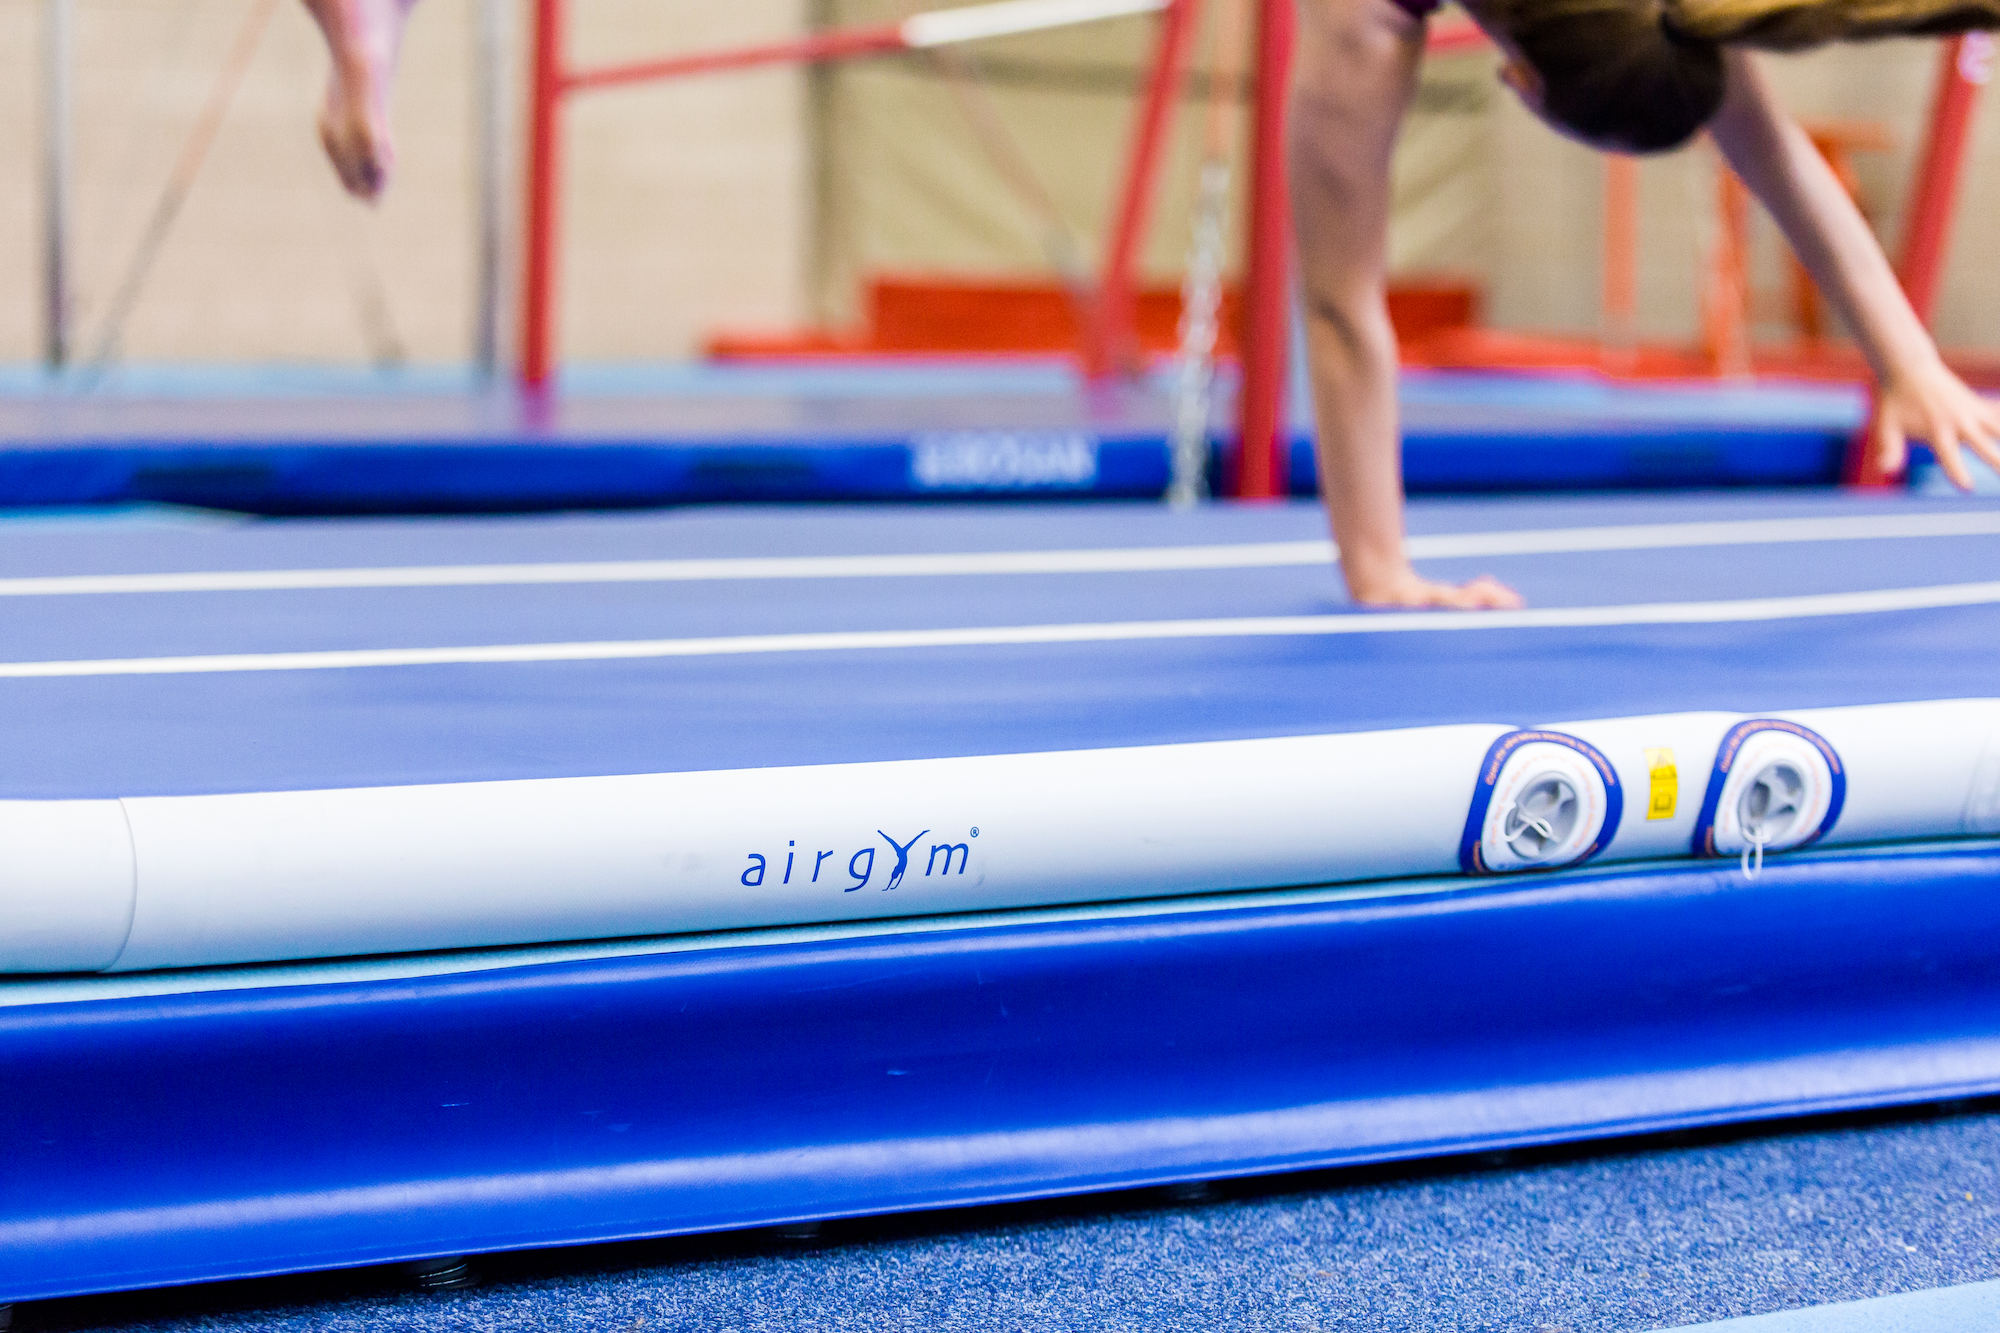 Warum Airgym Airtracks?